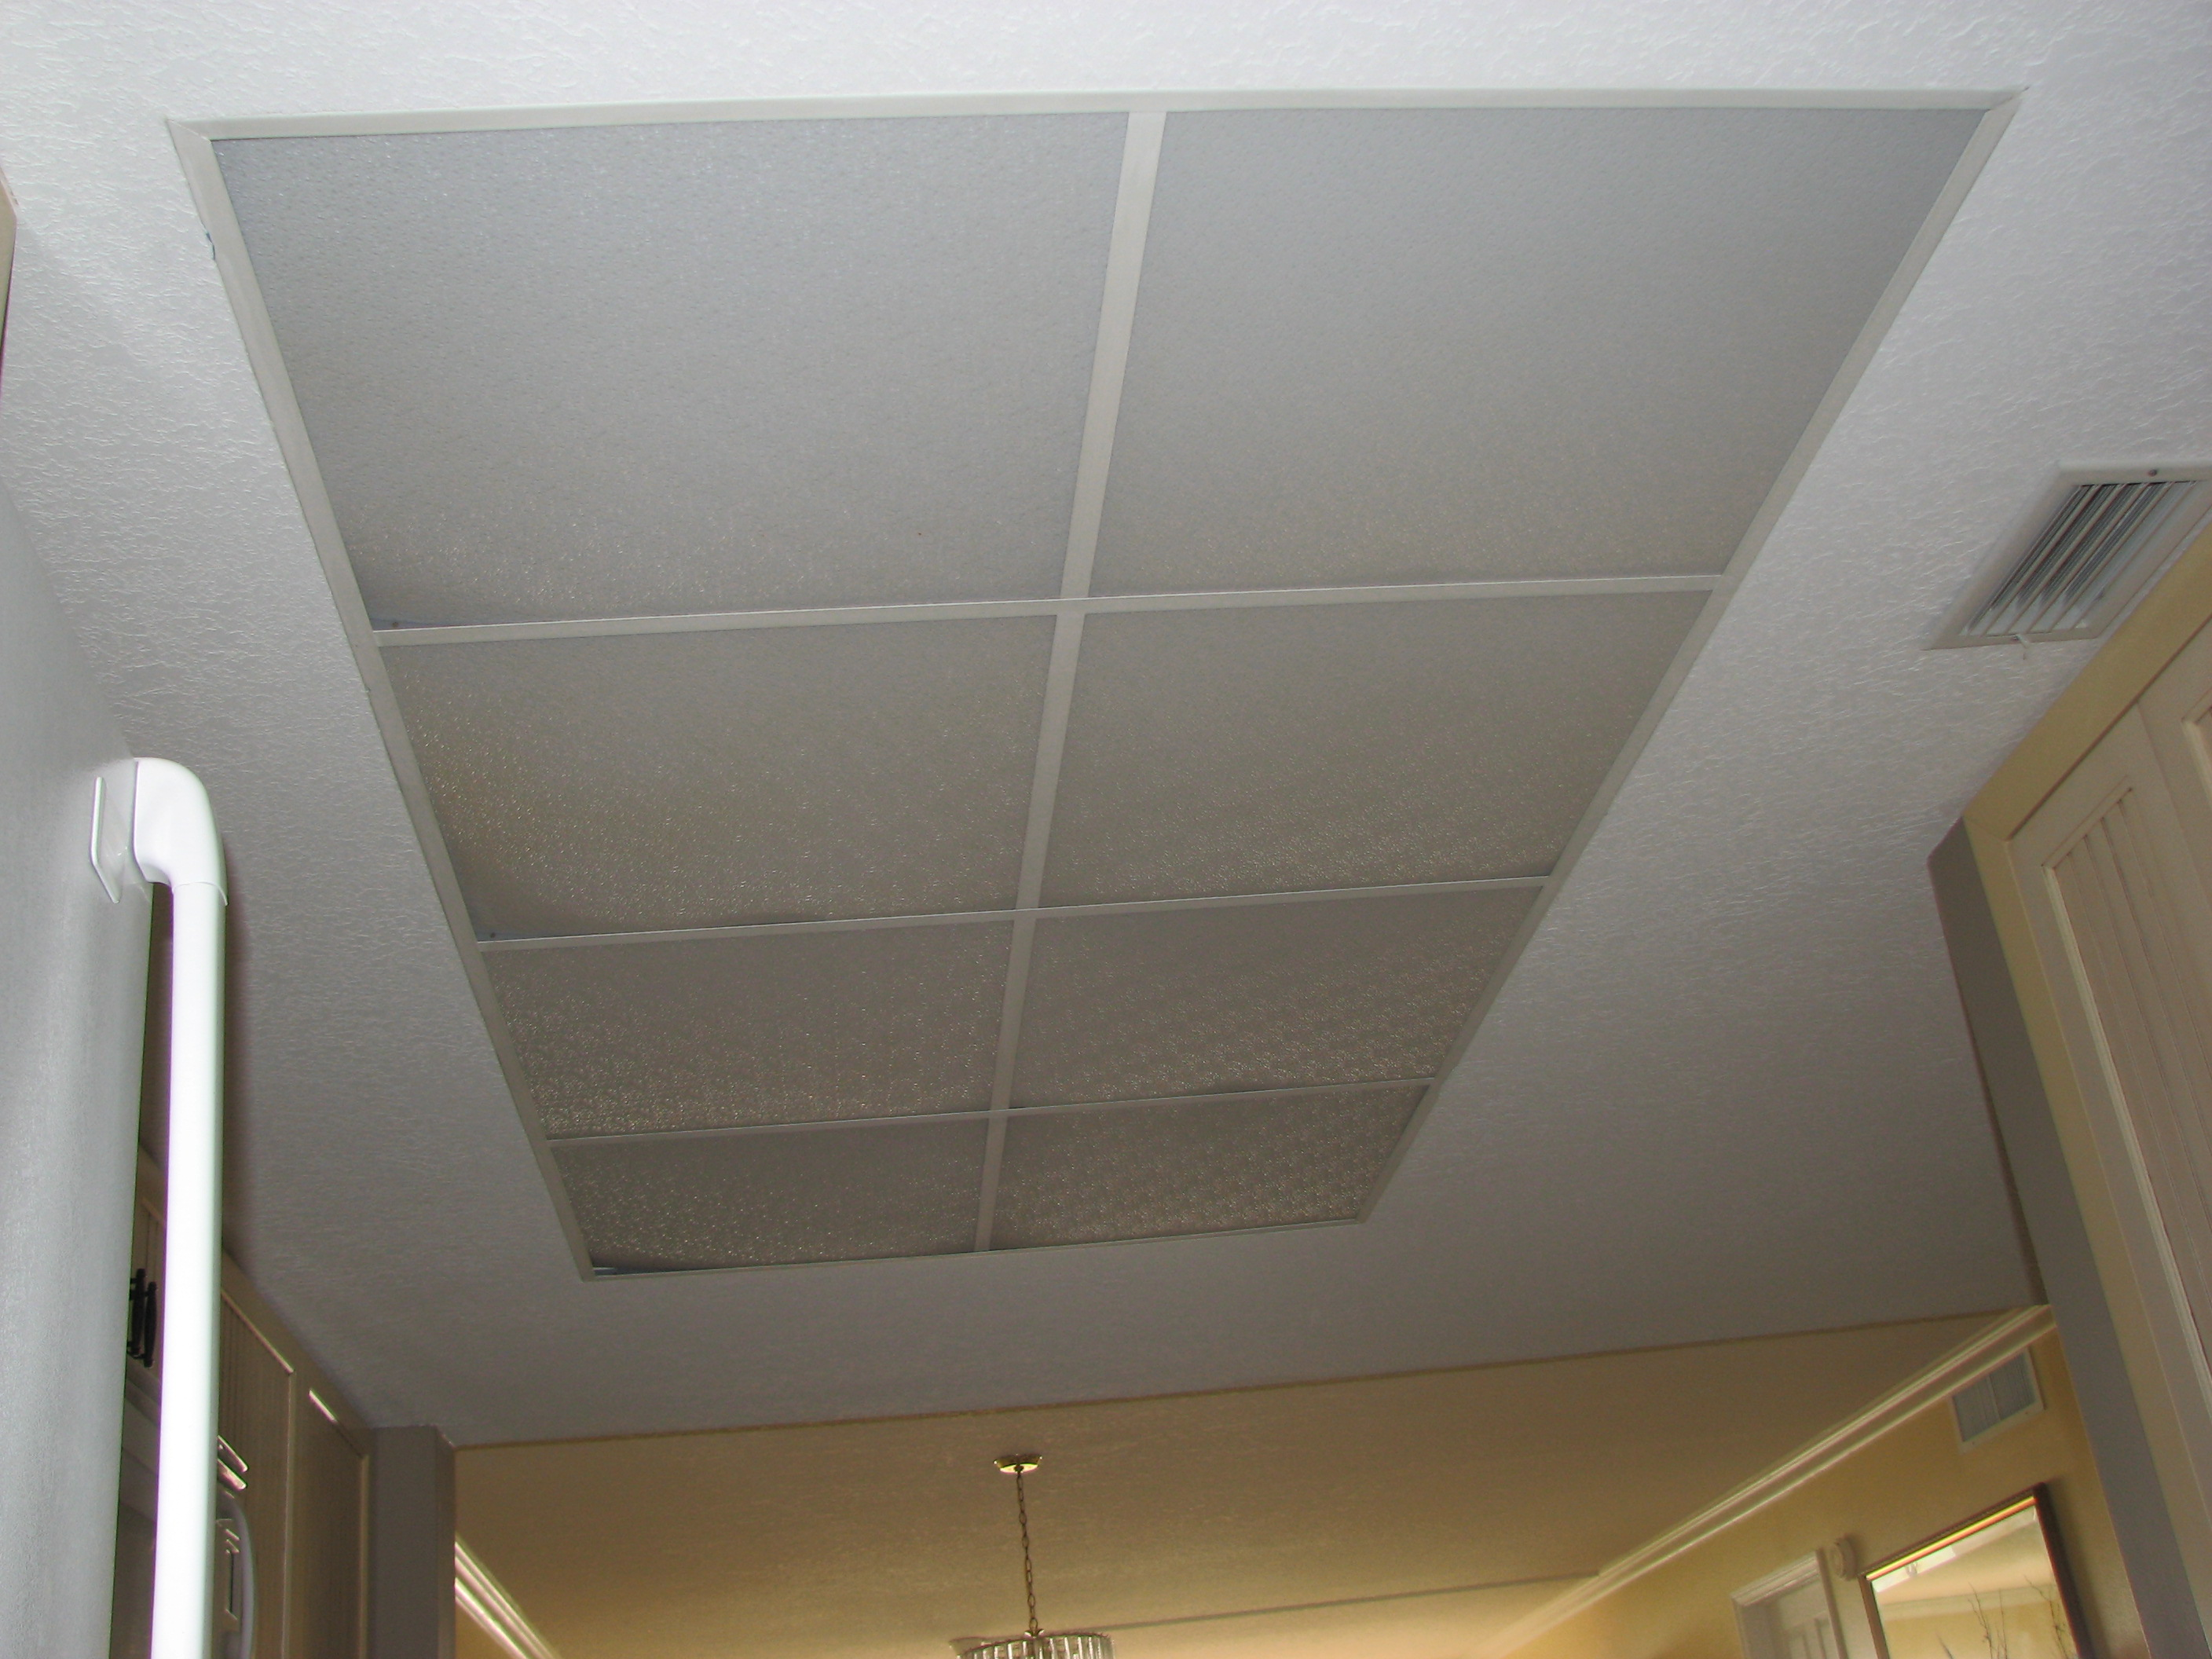 cocoa beach condo kitchen ceiling light before - What Is A Drop Ceiling